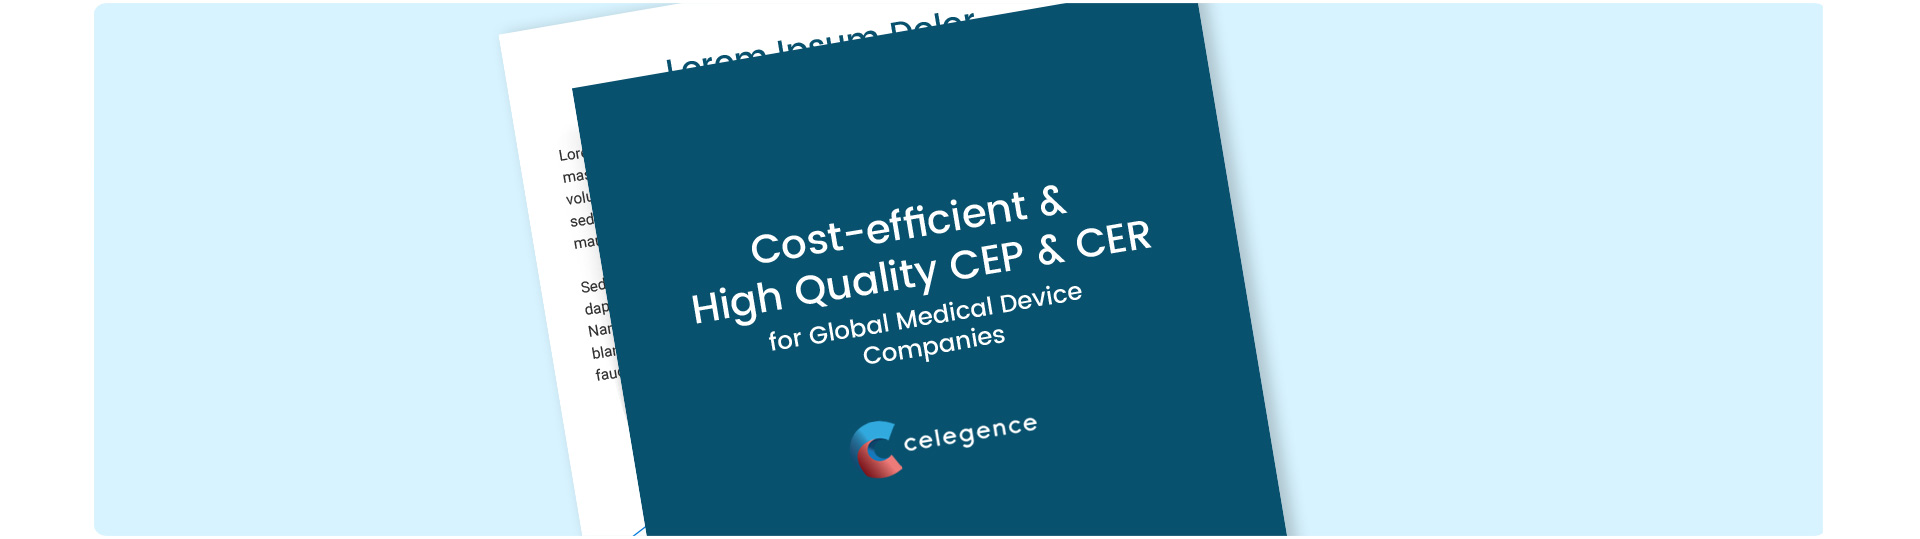 Cost-efficient and High Quality CEP & CER Writing for Global Medical Device Companies - Celegence - Case Study